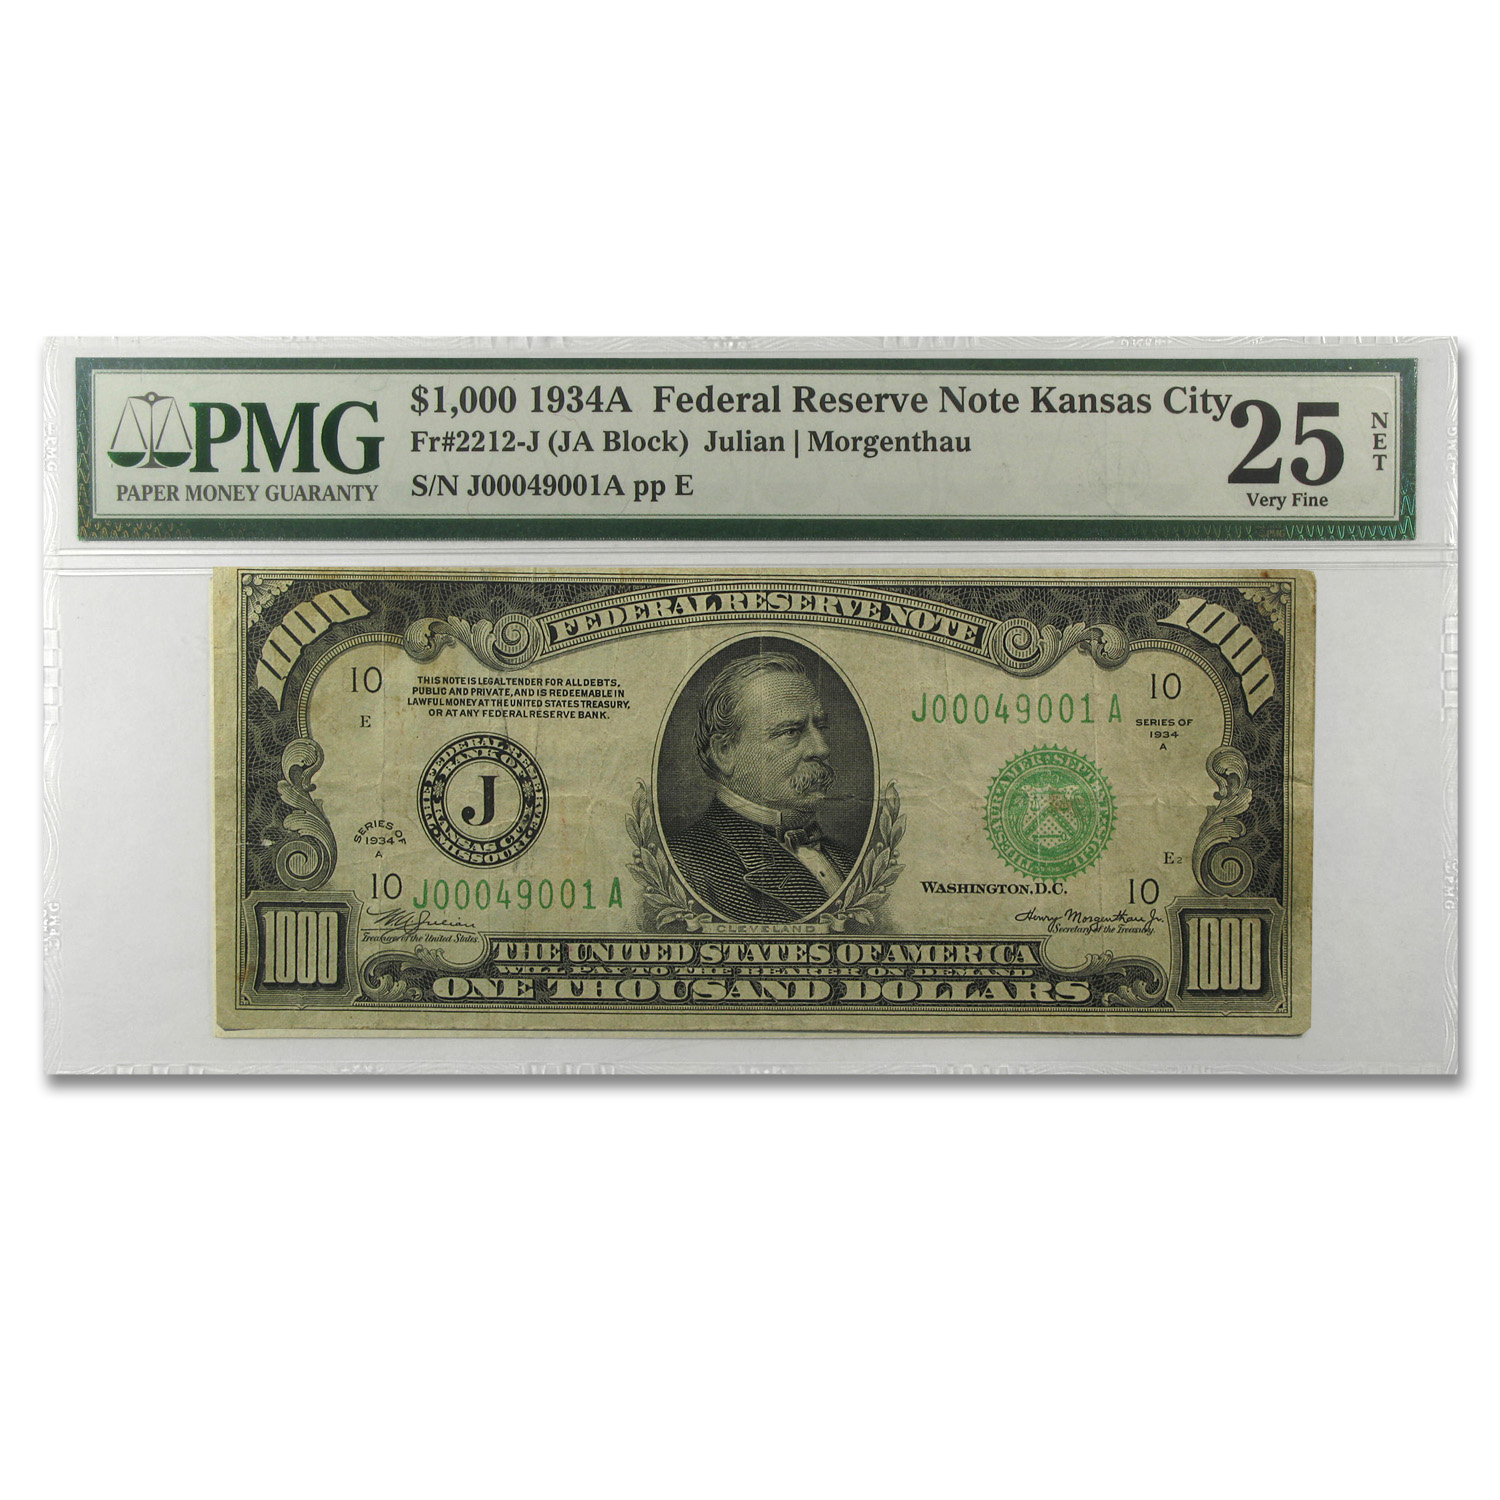 1934-A (J-Kansas City) $1,000 FRN VF-25 Net PMG